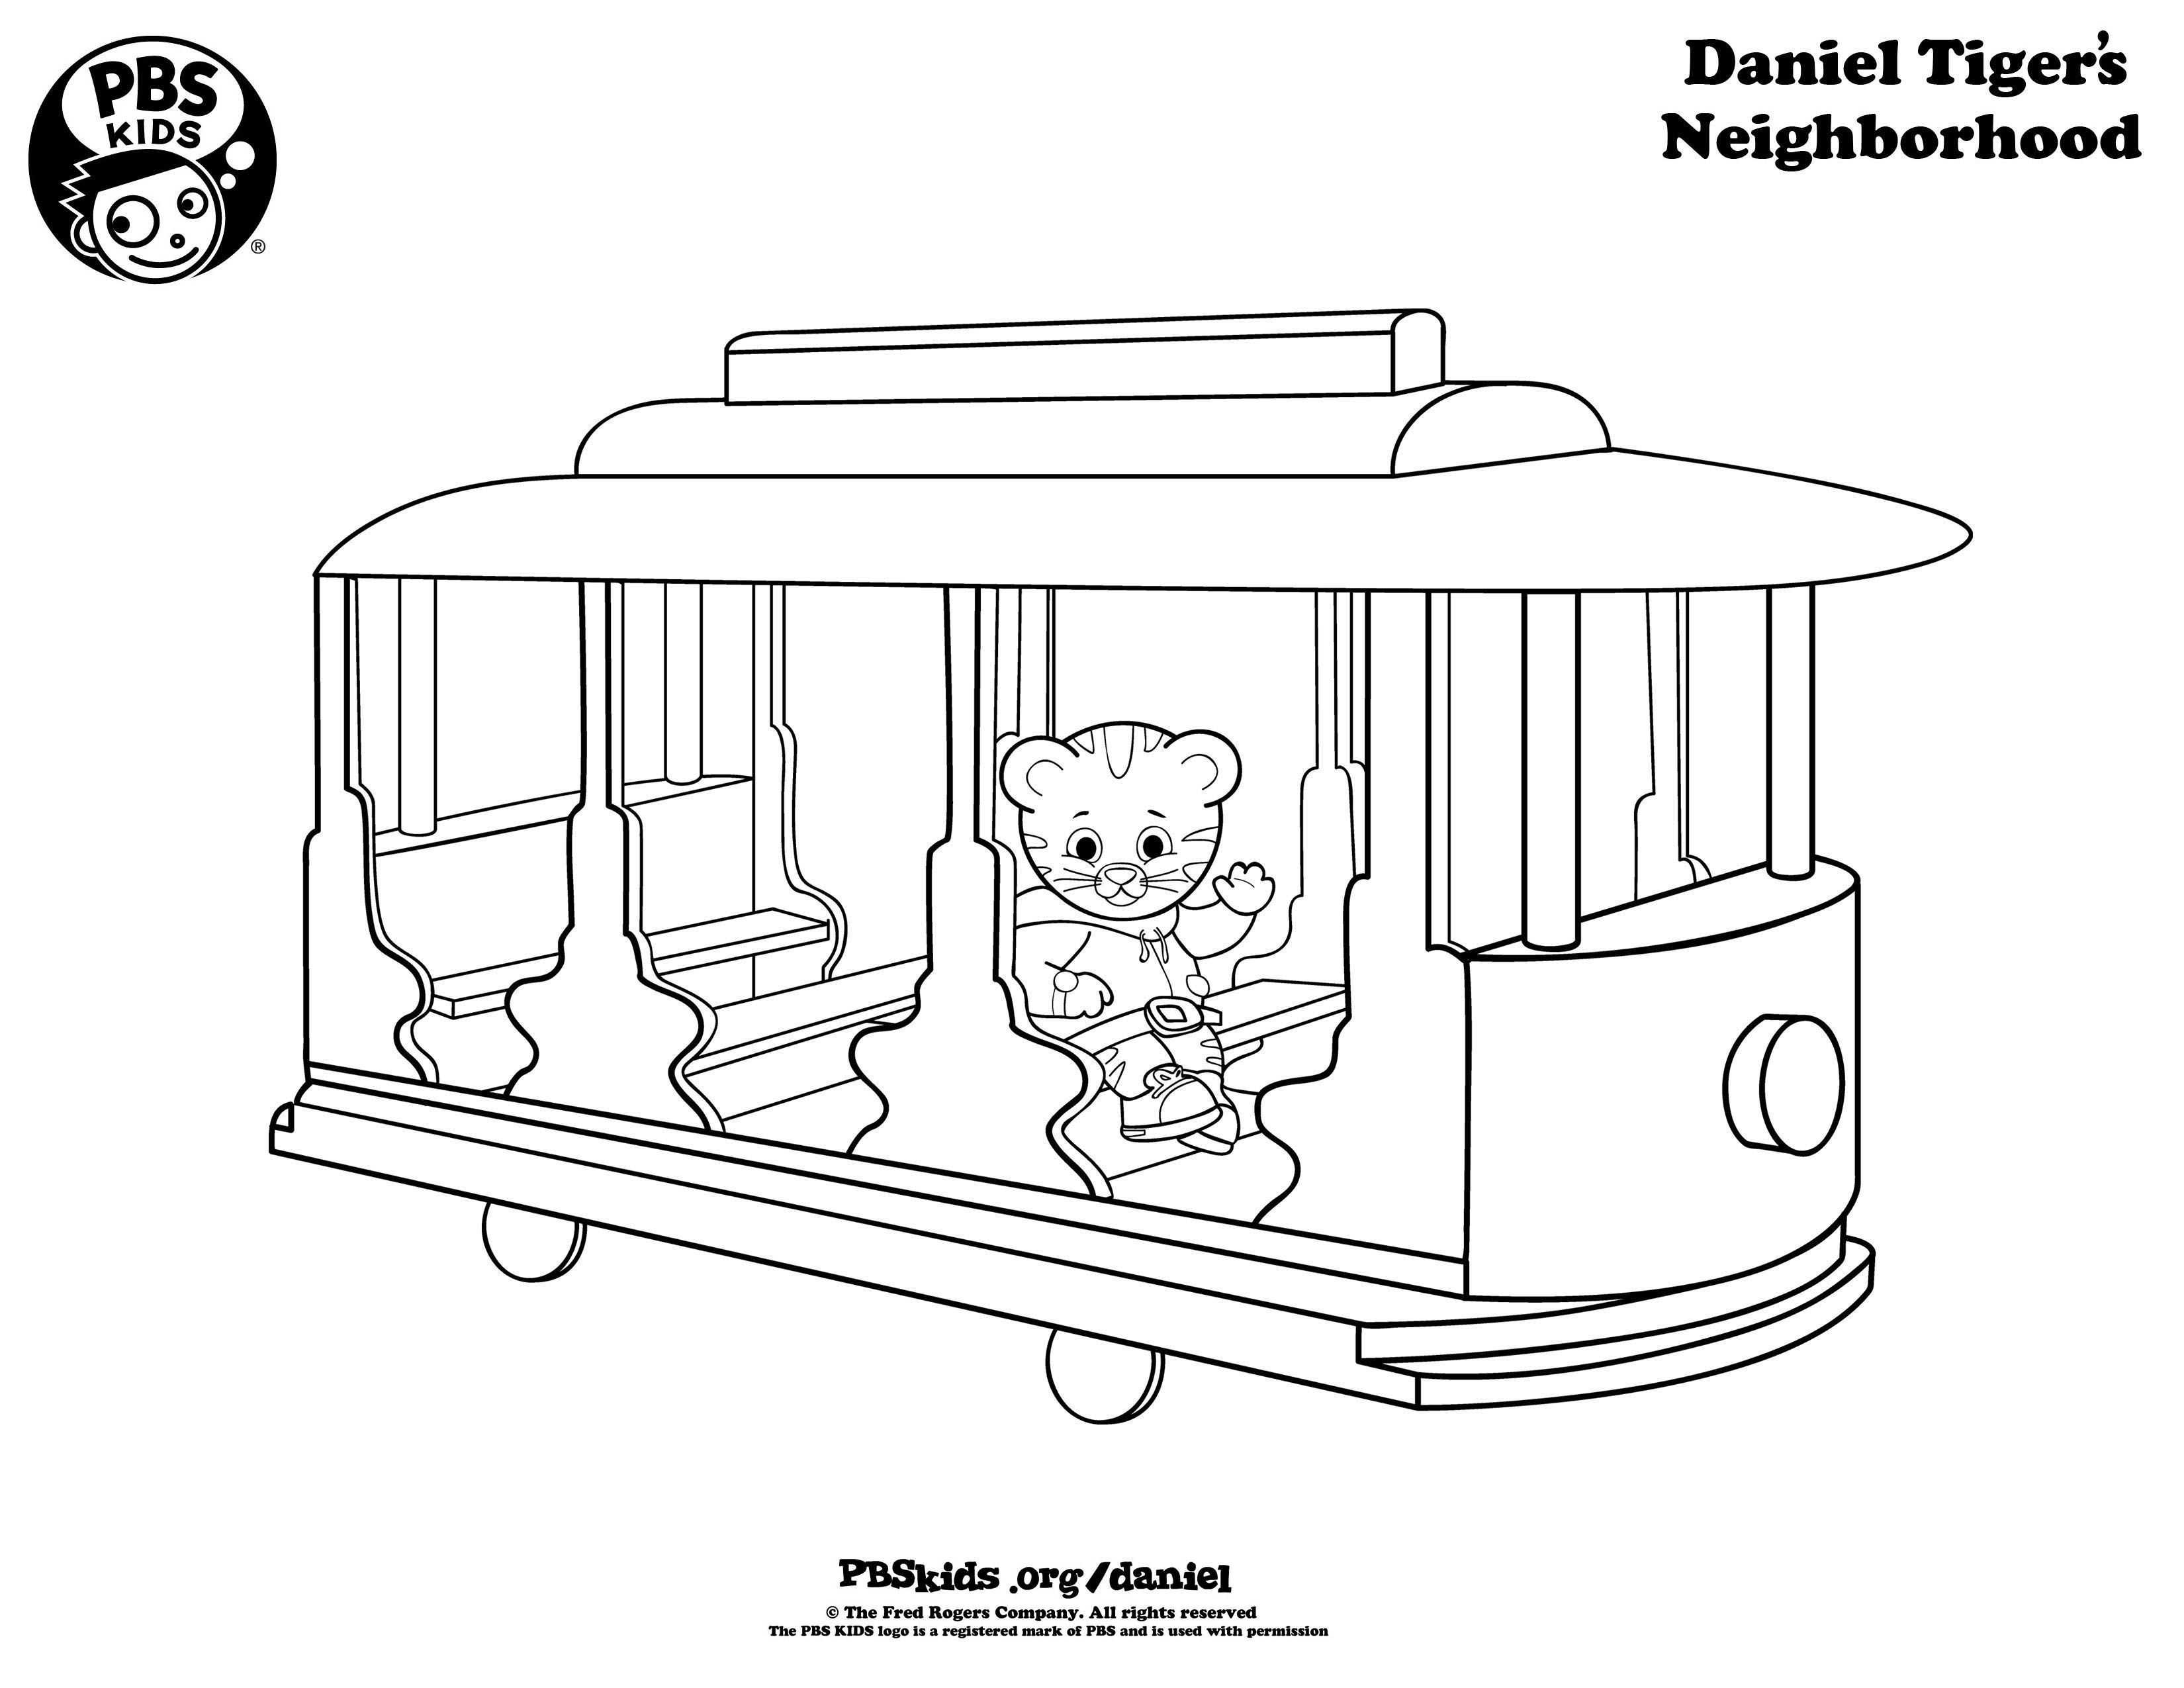 Coloring Daniel Tiger S Neighborhood Pbs Kids 4th Of July